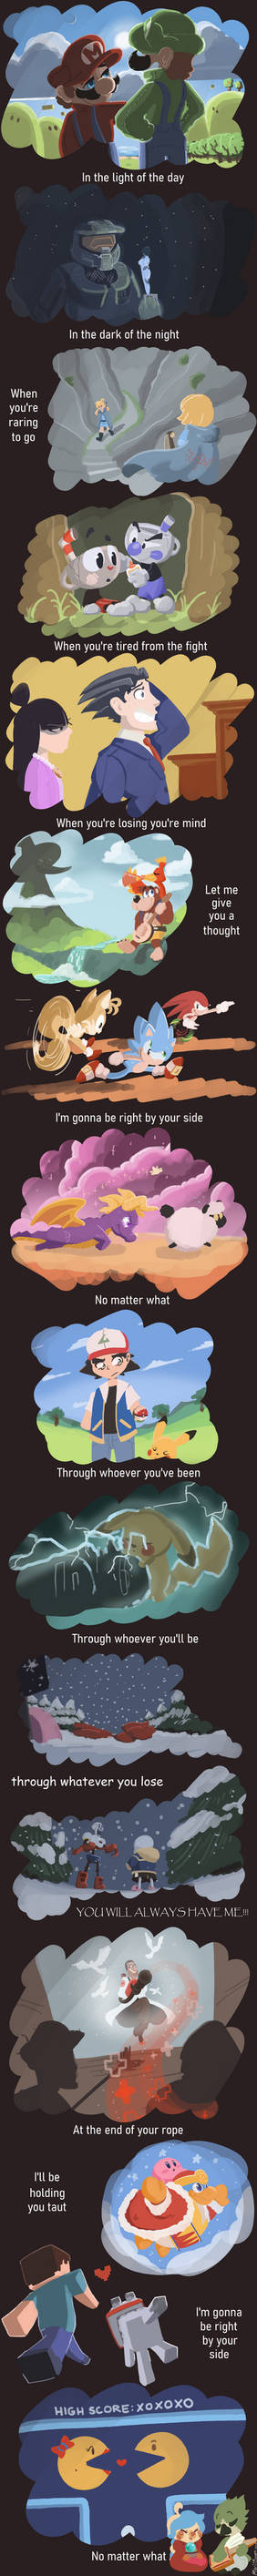 No Matter What (Crossover Comic)